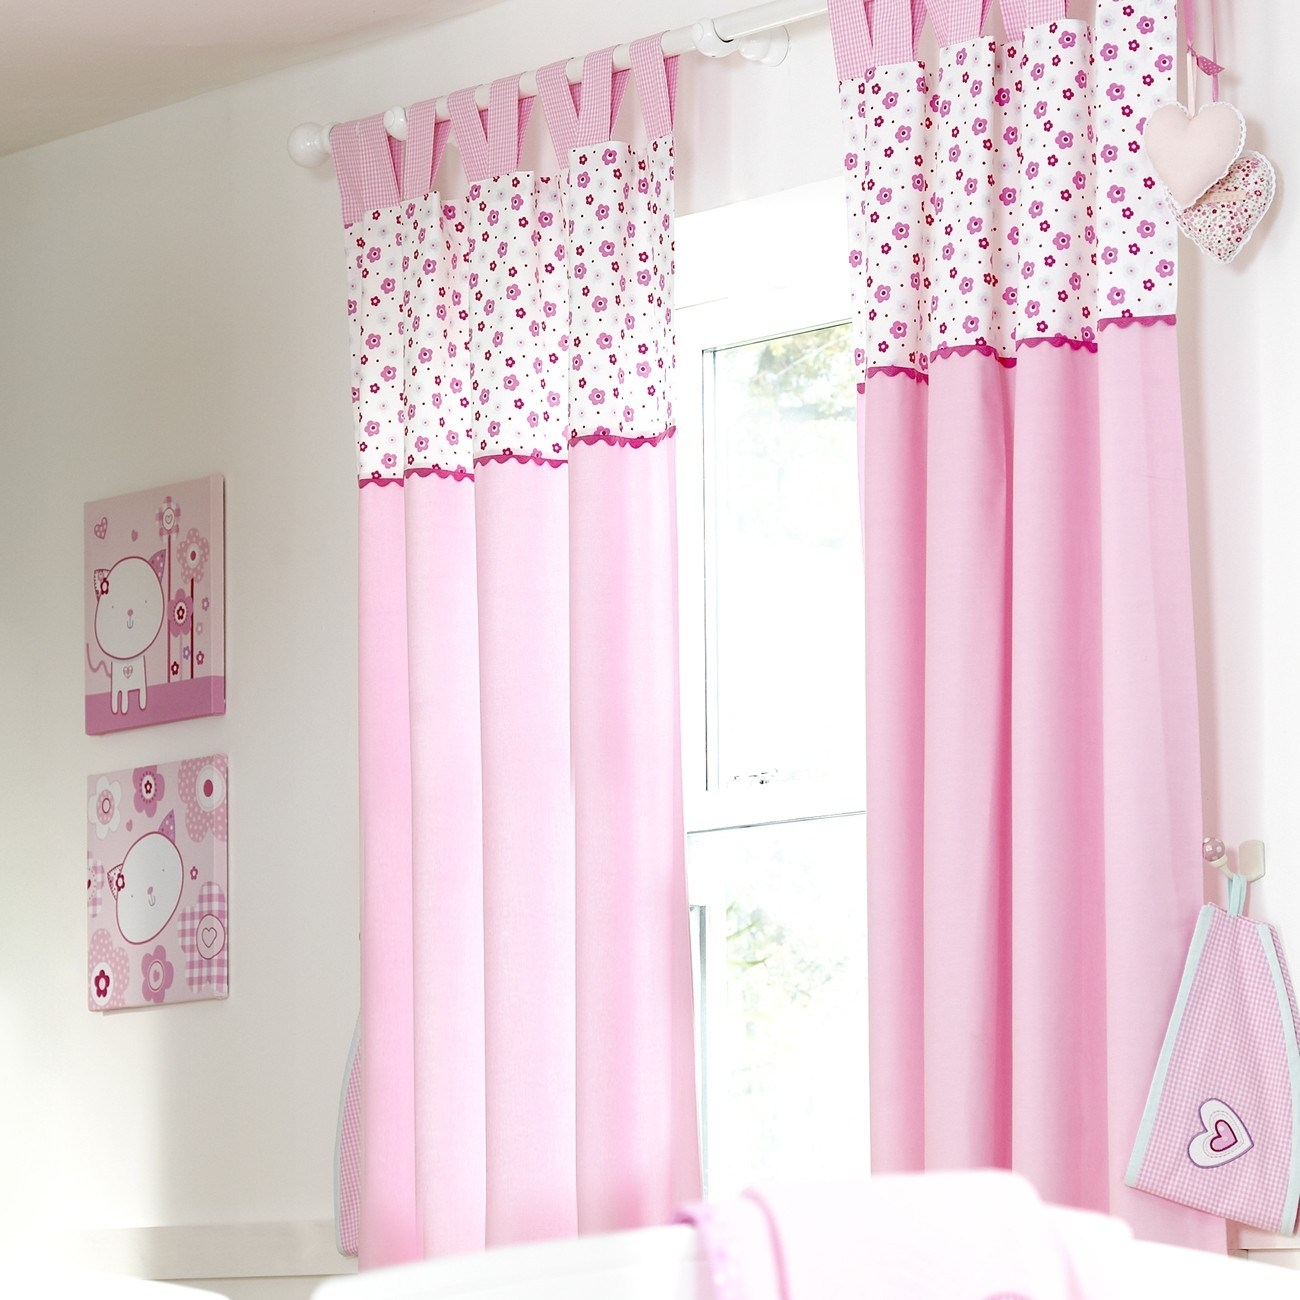 Curtains For Little Girls Bedroom With Regard To Bedroom Curtains For Girls (View 14 of 25)